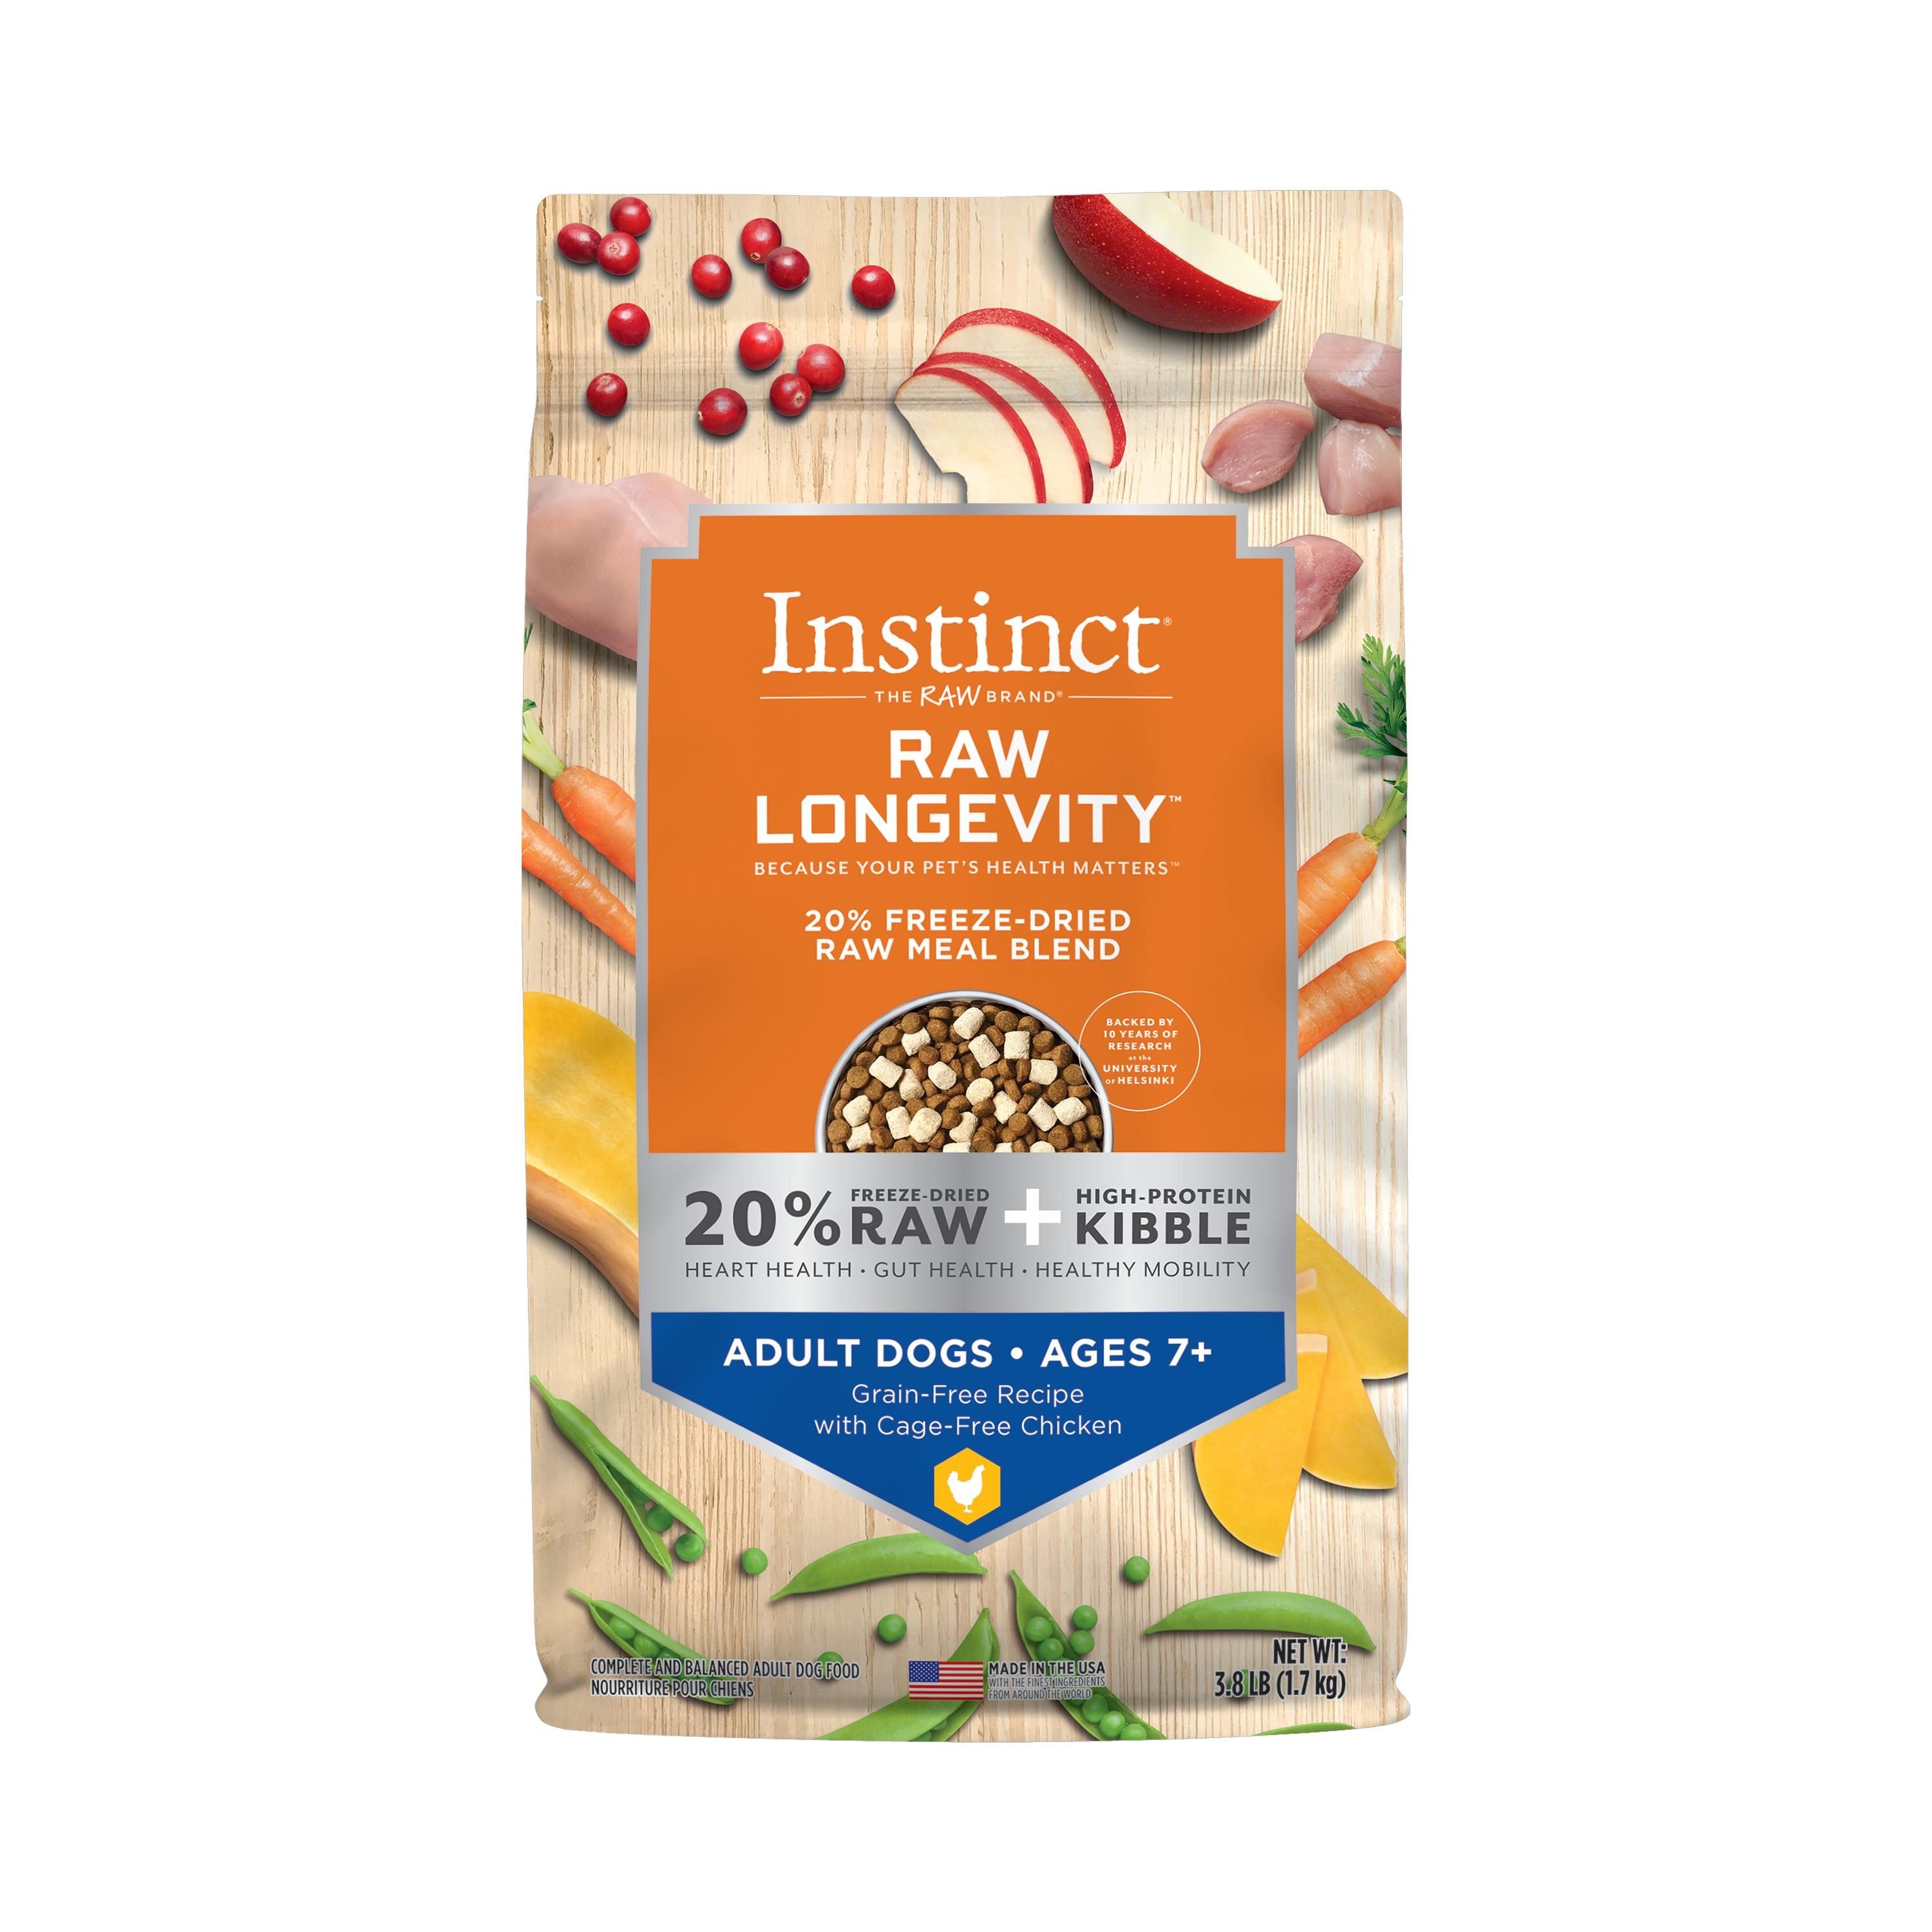 Instinct by Nature's Variety Raw Longevity Grain-Free Recipe with Cage-Free Chicken Age 7+ 20% Freeze-Dried Dog Food, 3.8-lb